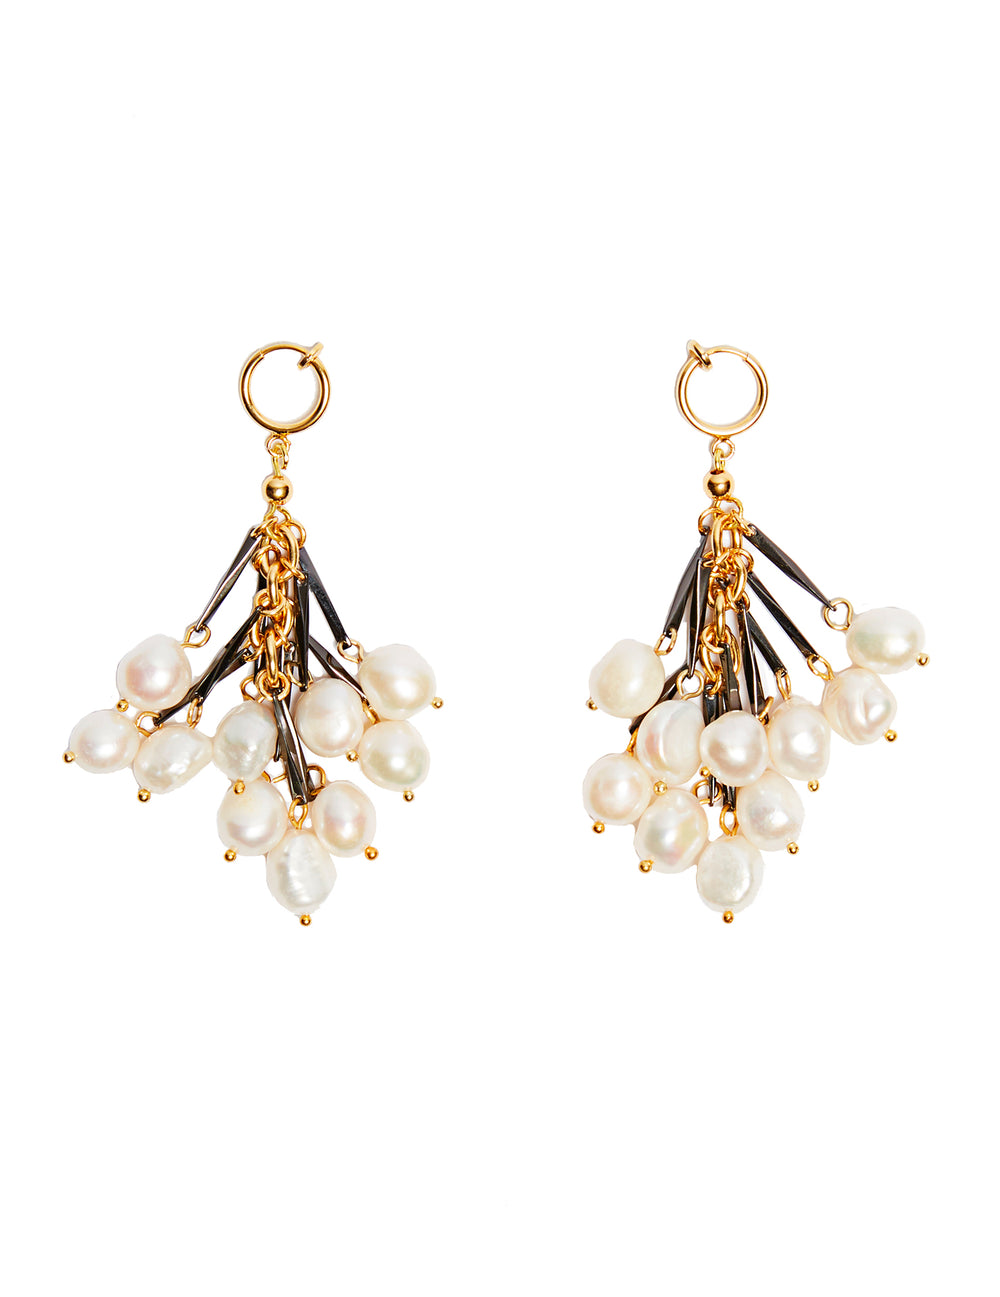 Crystal fringe earrings (hoop clip)